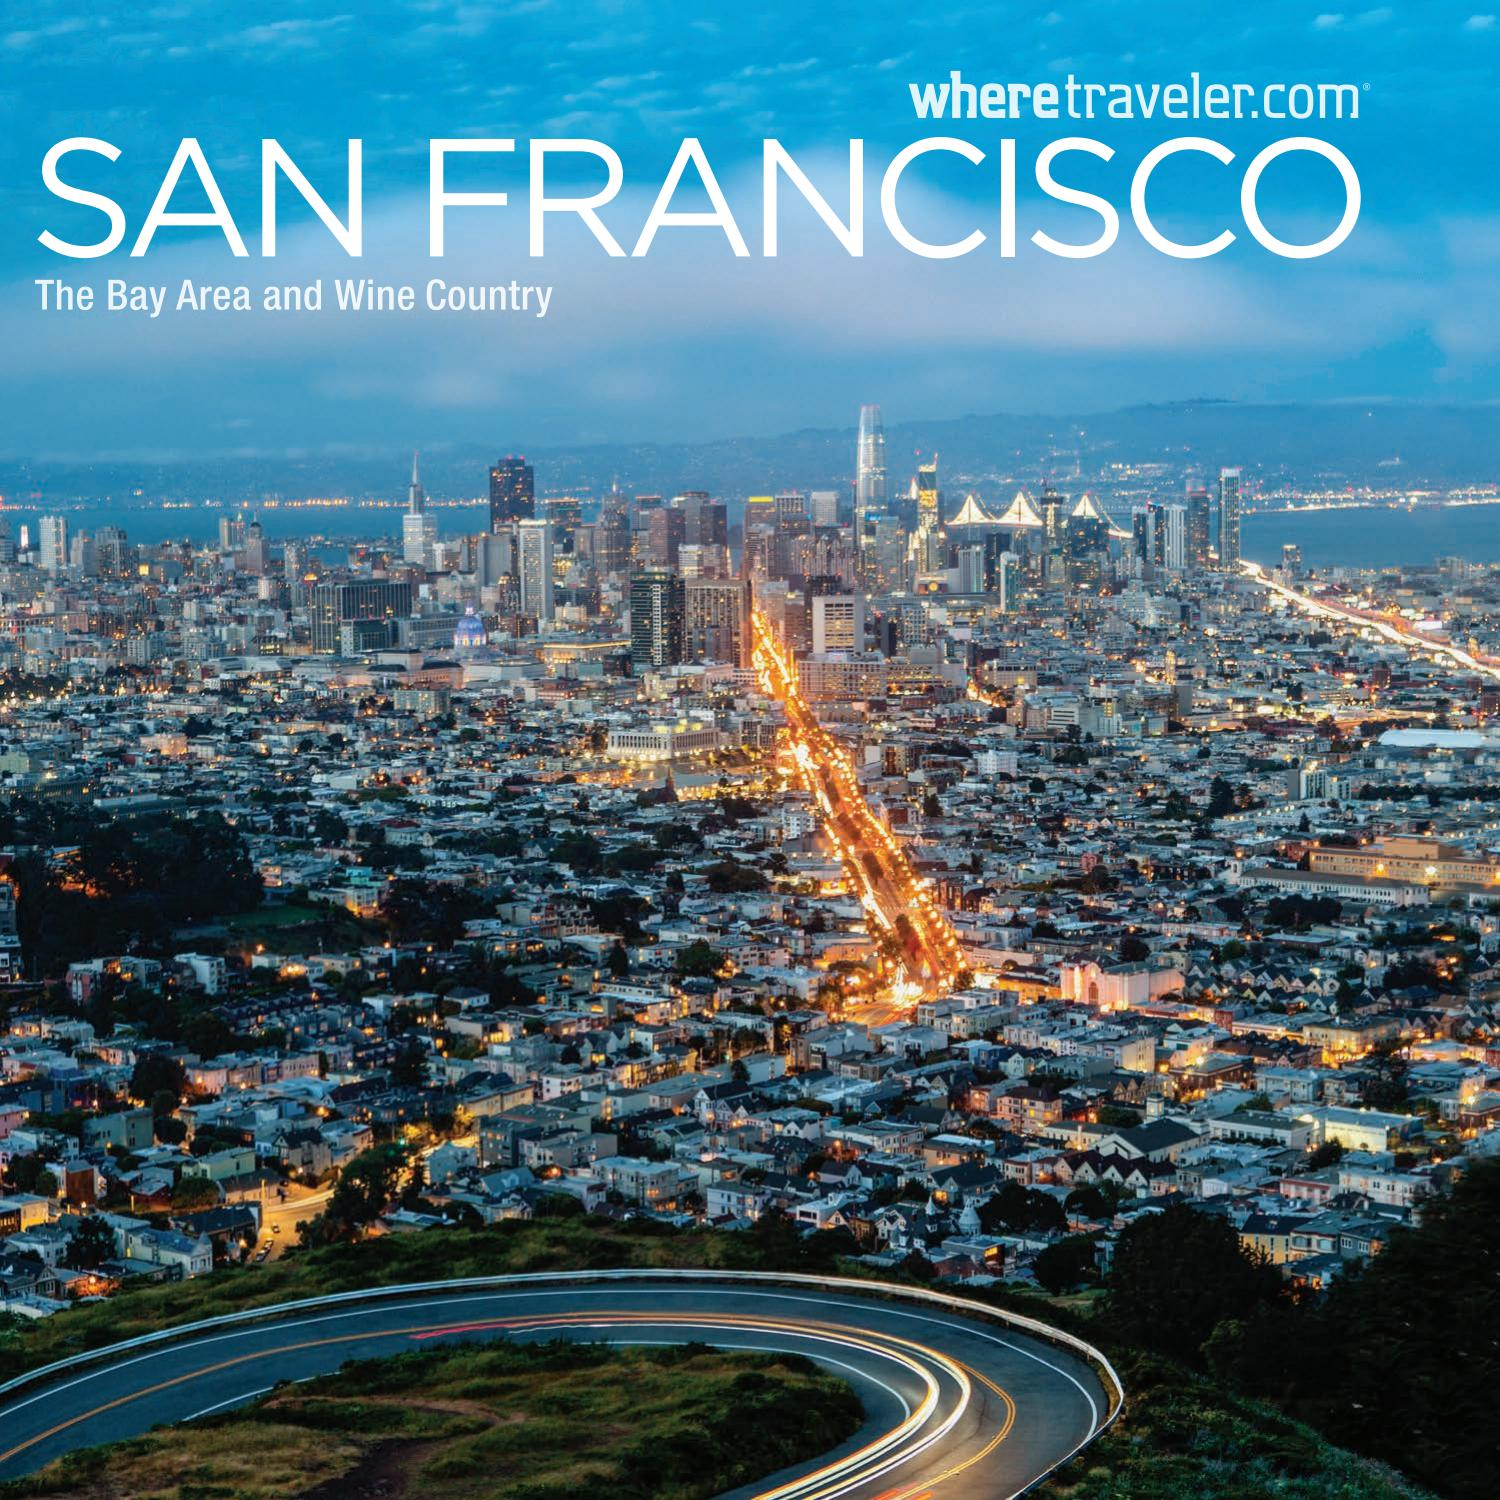 0854c5f55a149 Guestbook San Francisco 2018 by Morris Media Network - issuu